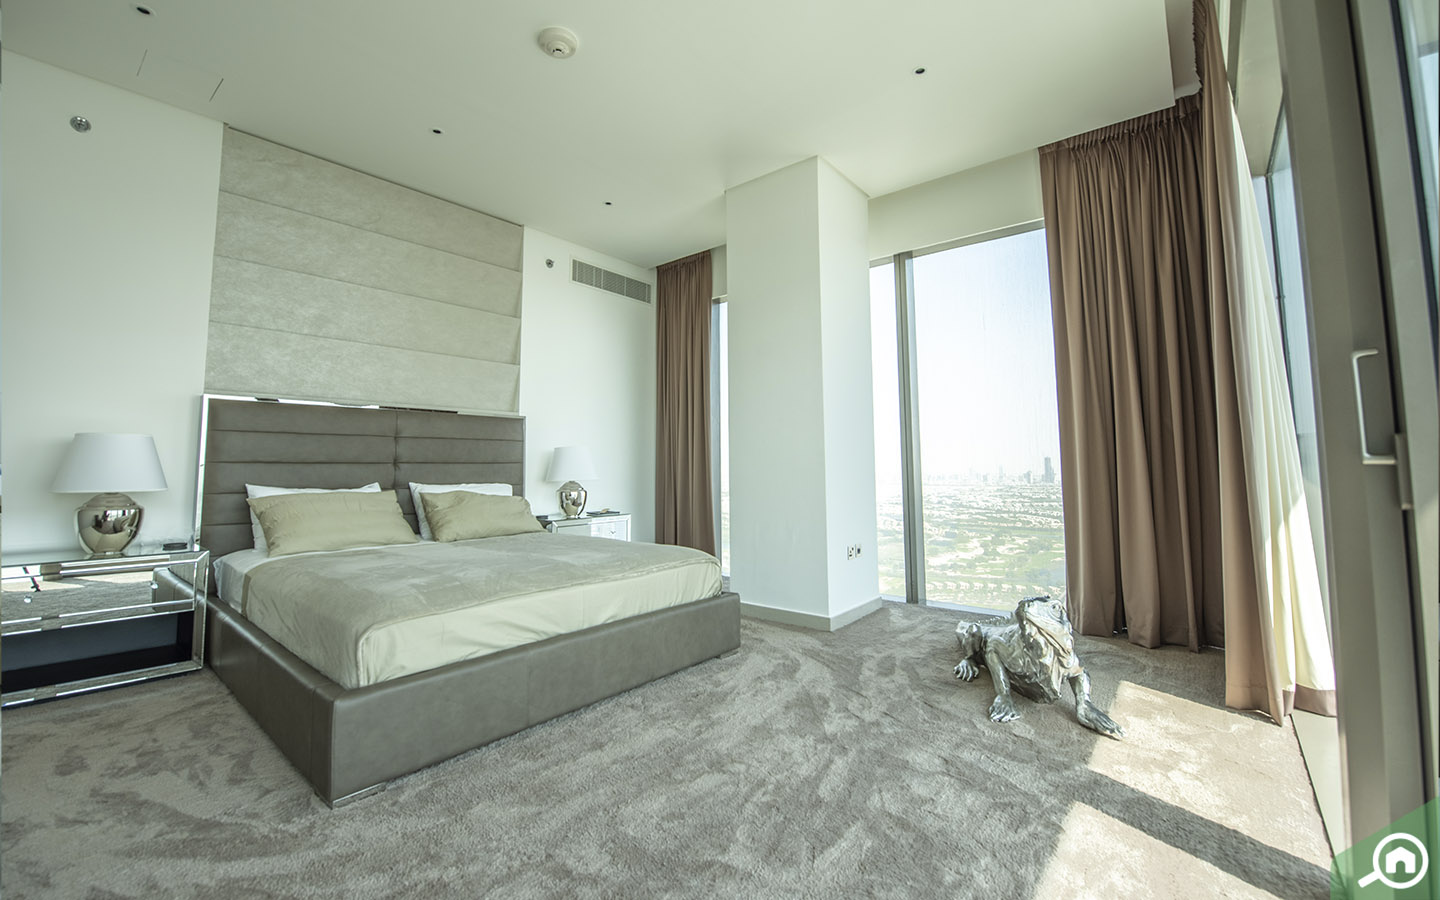 bedrooms in the Marina Gate Penthouse